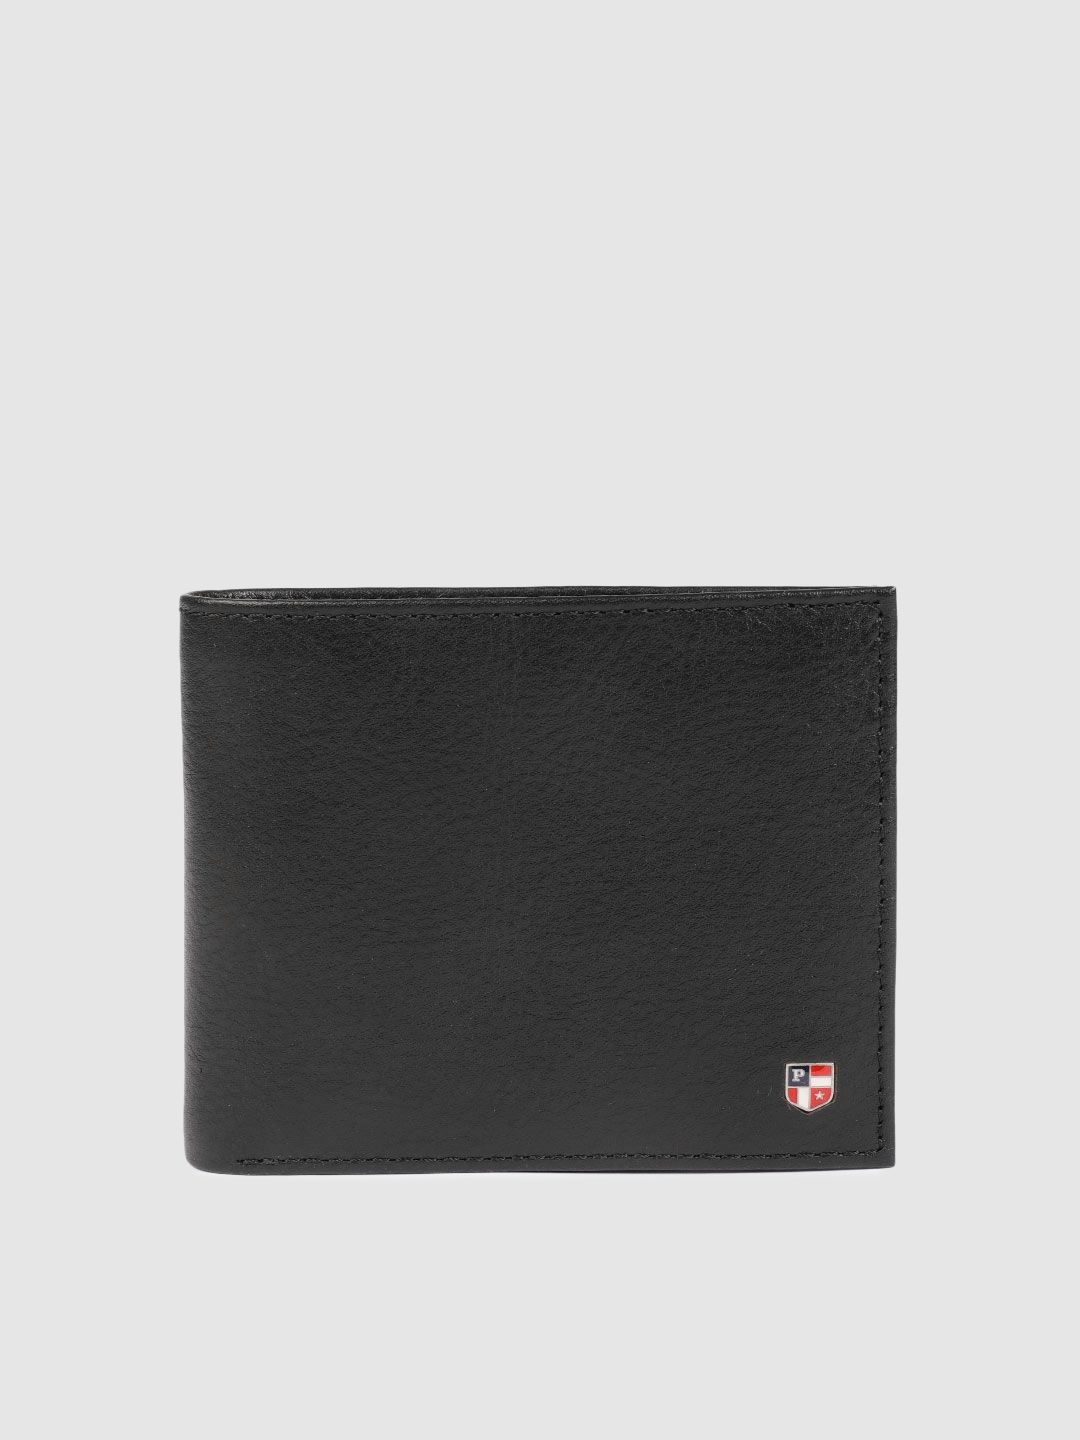 U.S. Polo Assn. Men Black Solid Two Fold Leather Wallet